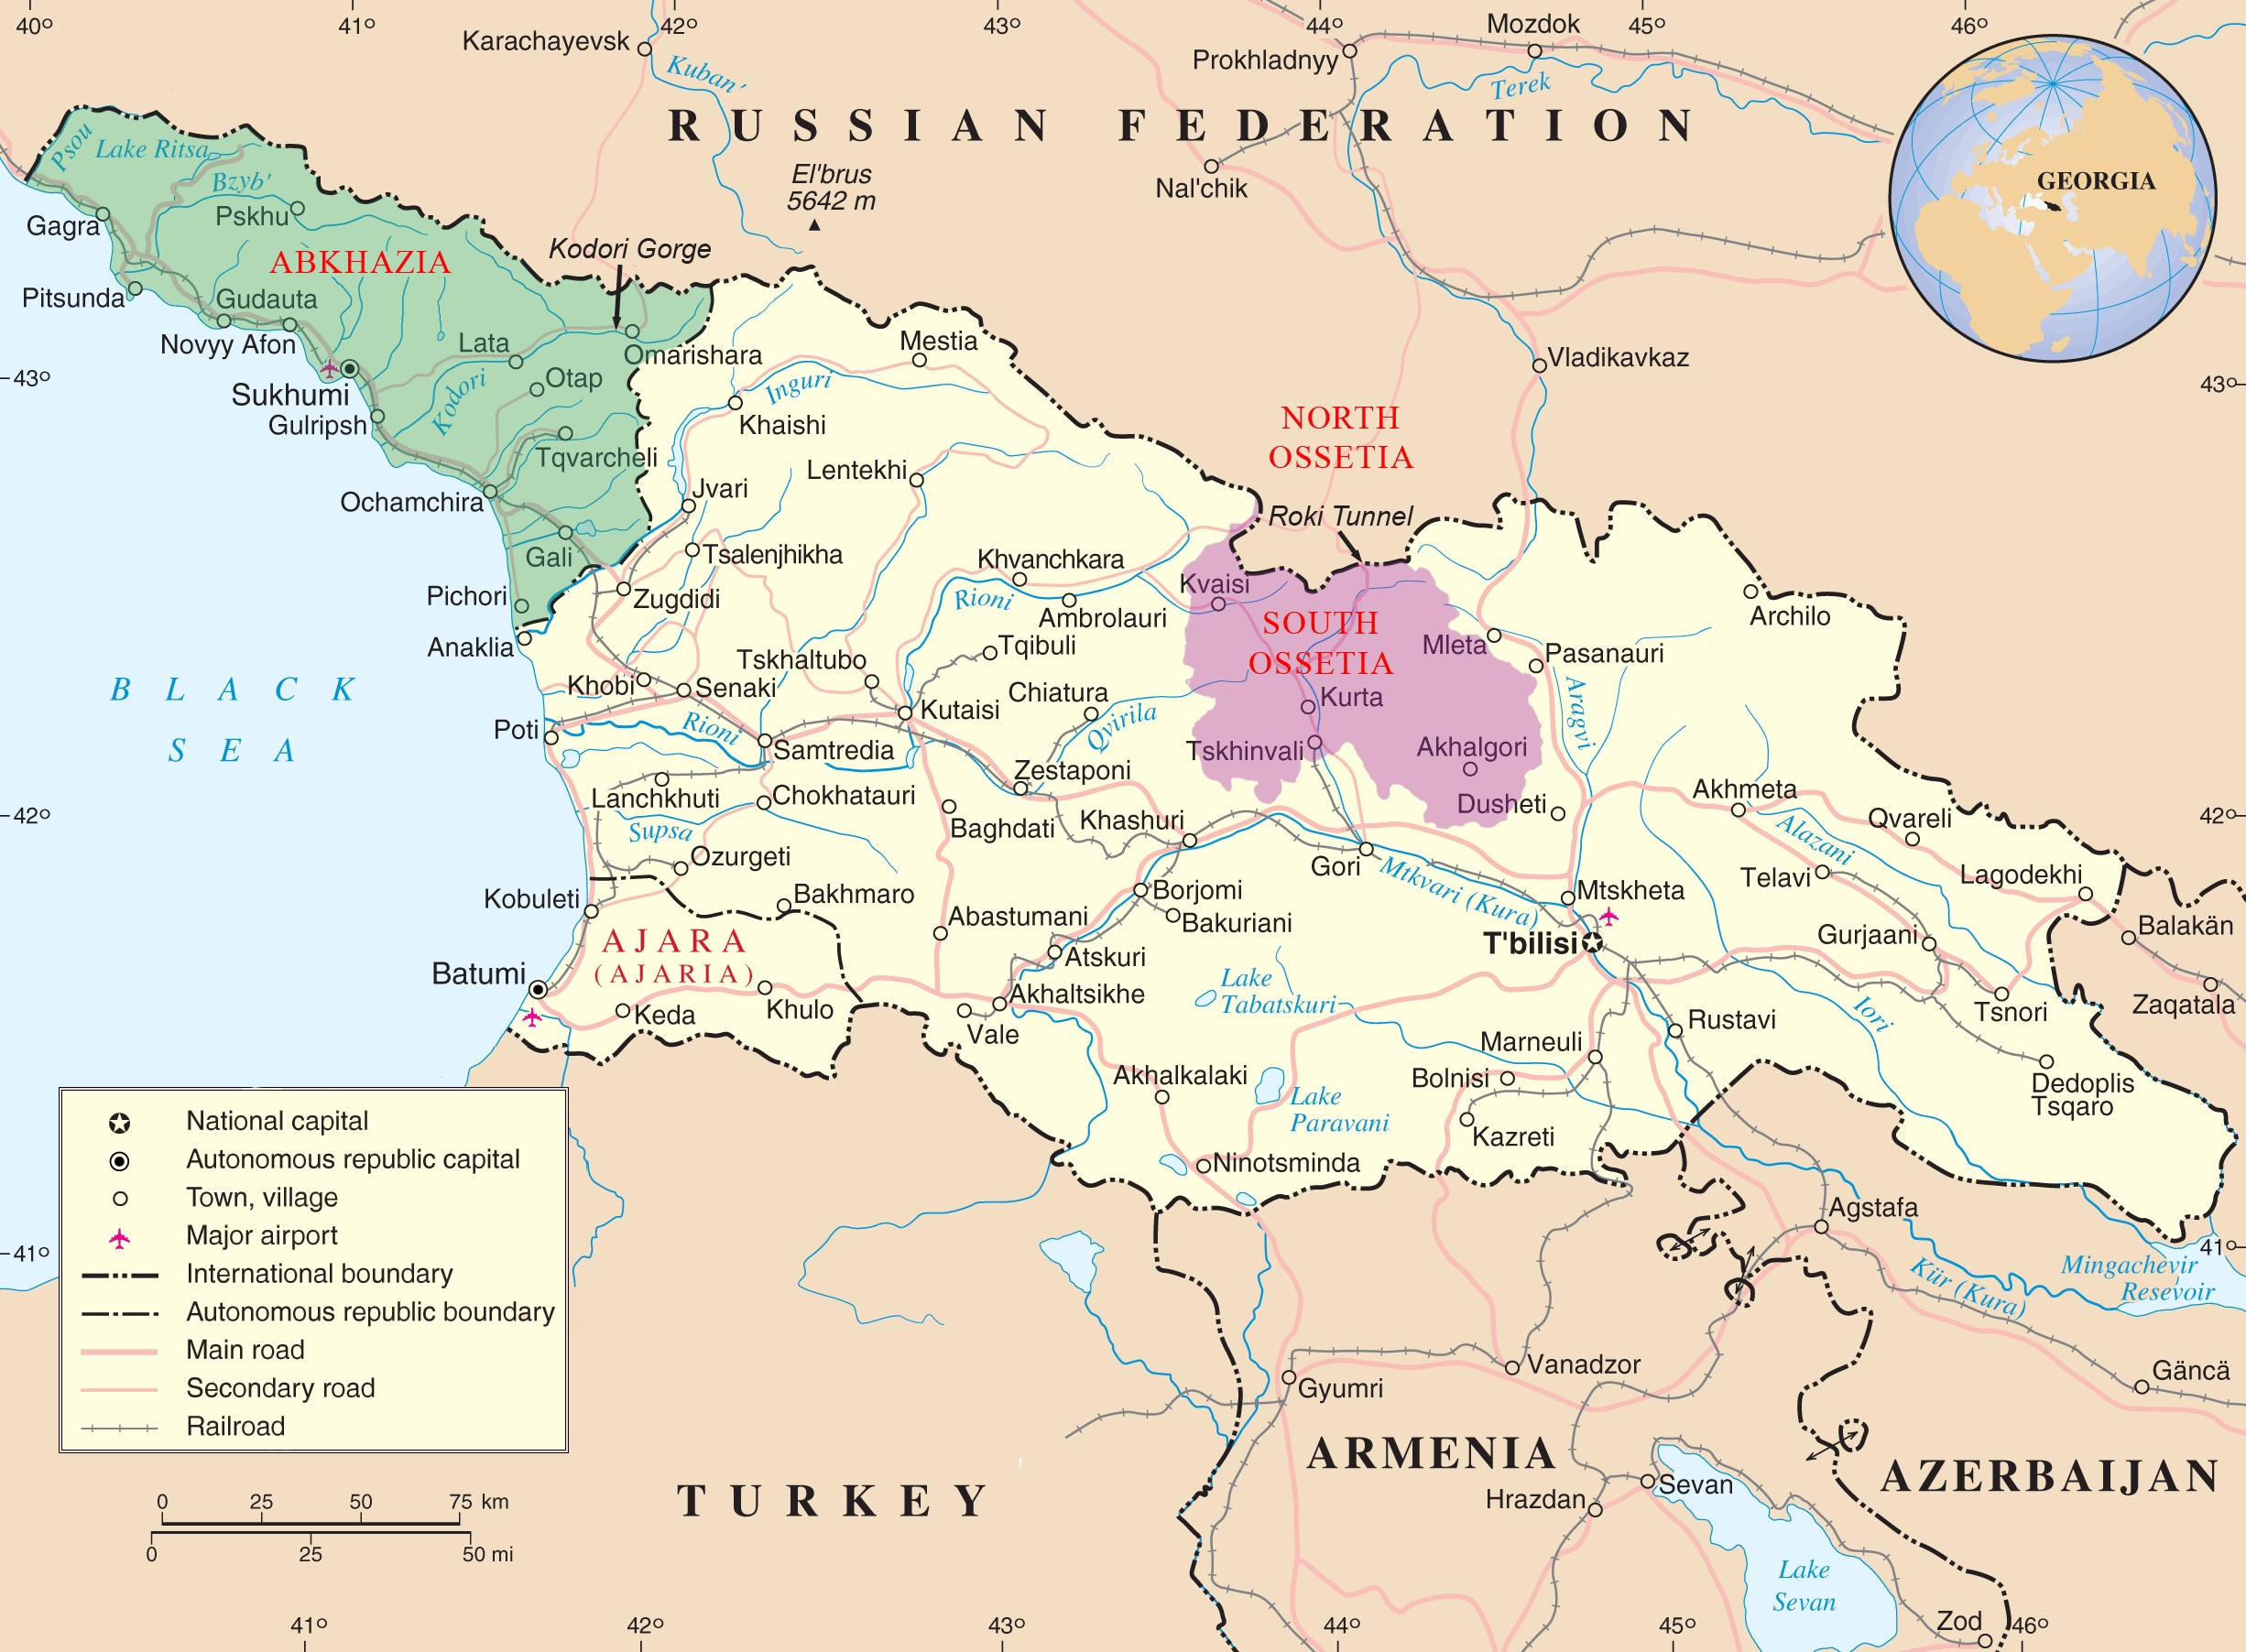 Abkhazia and South Ossetia on the map of Georgia